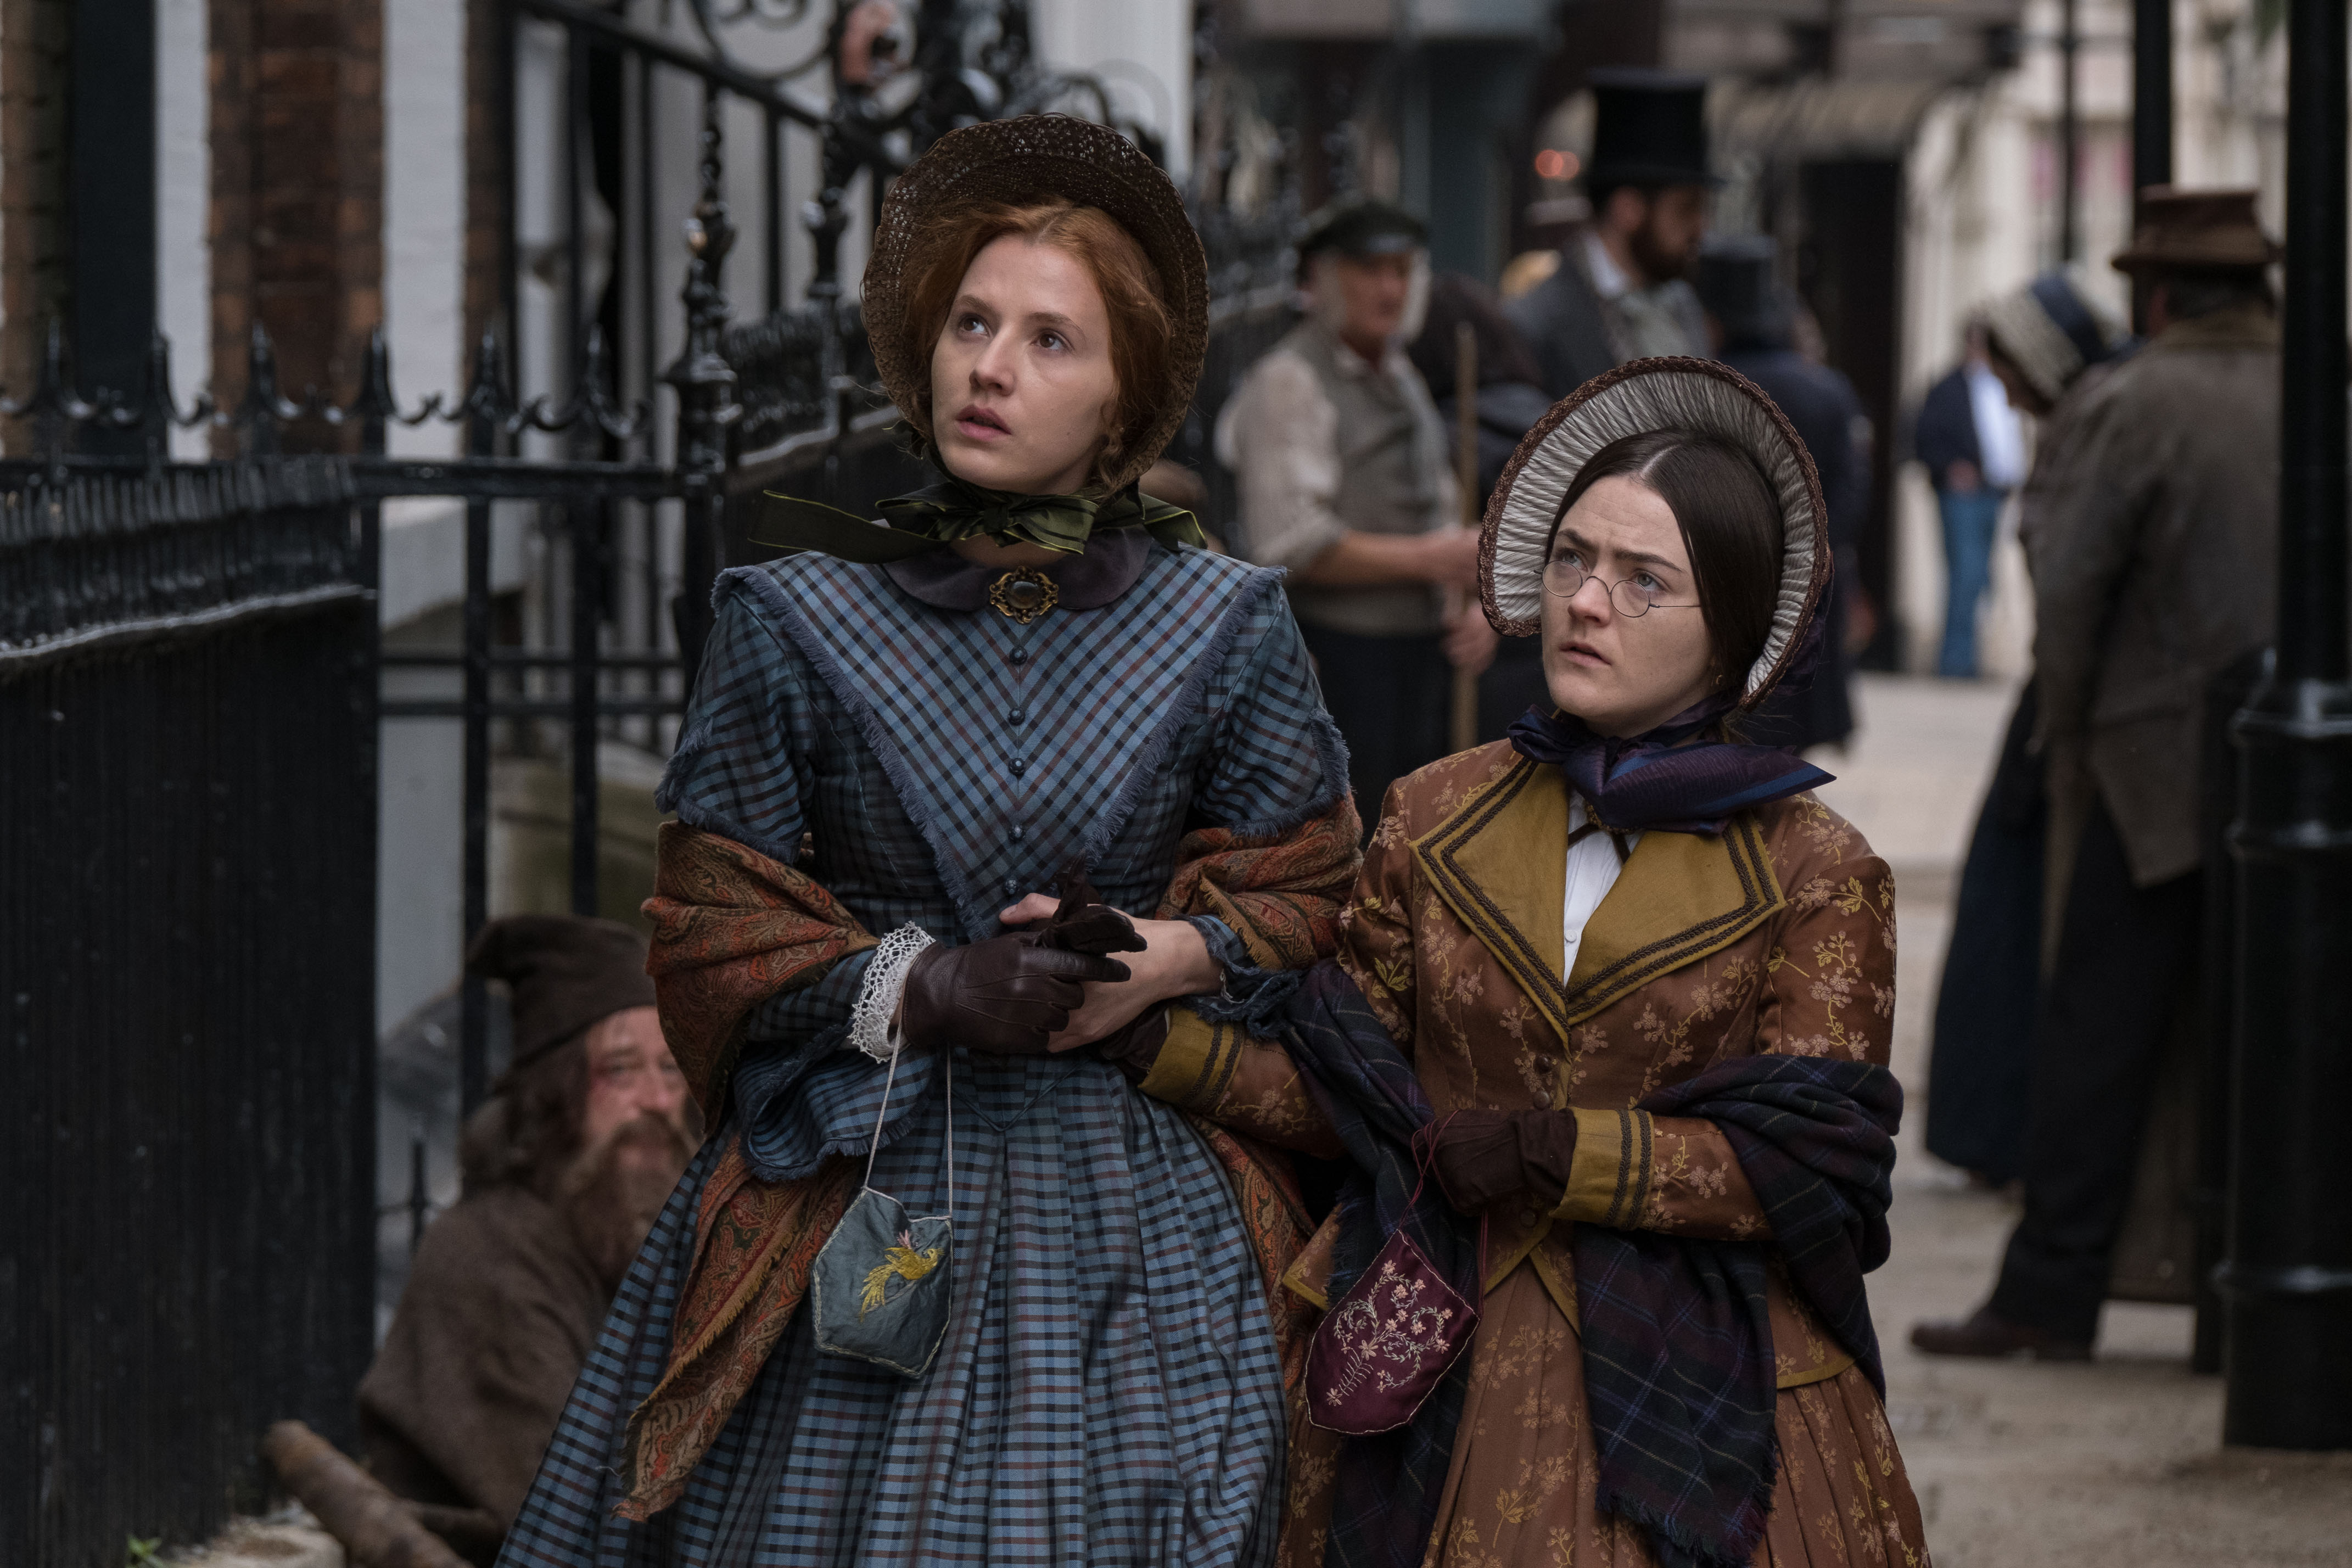 38 period dramas you can stream right now on Netflix, Amazon and Hulu